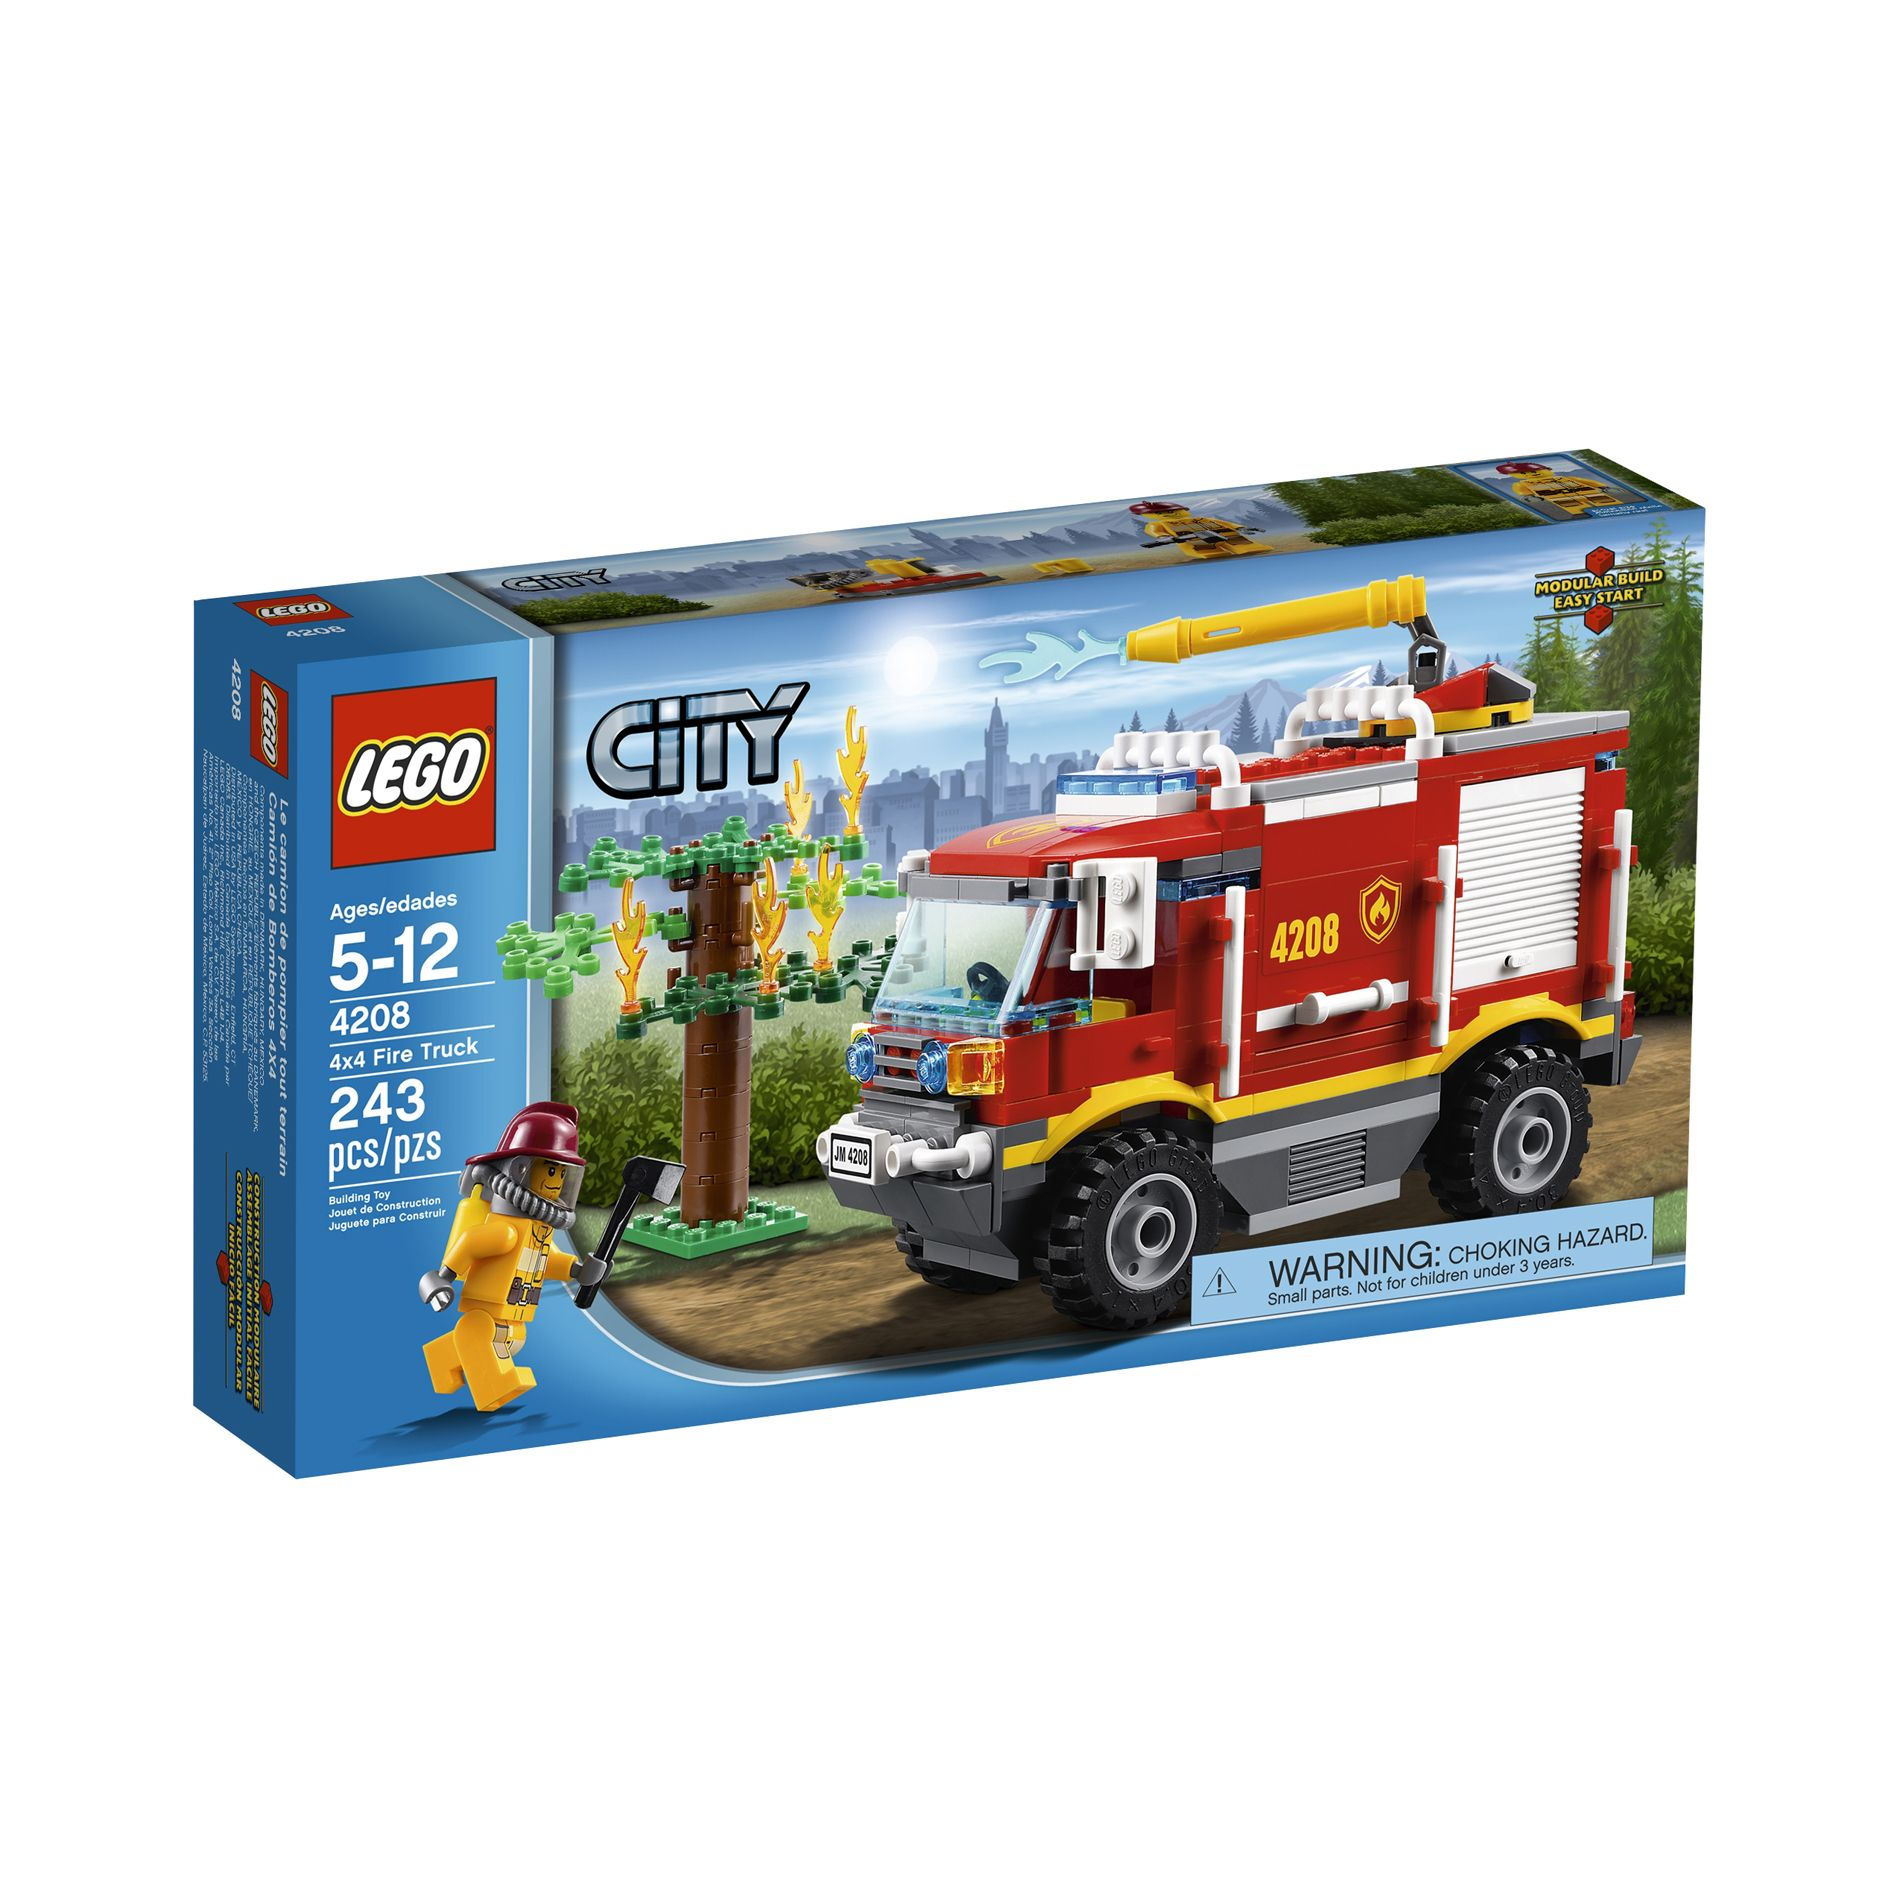 City 4X4 Fire Truck 4208                                                                                                         at mygofer.com